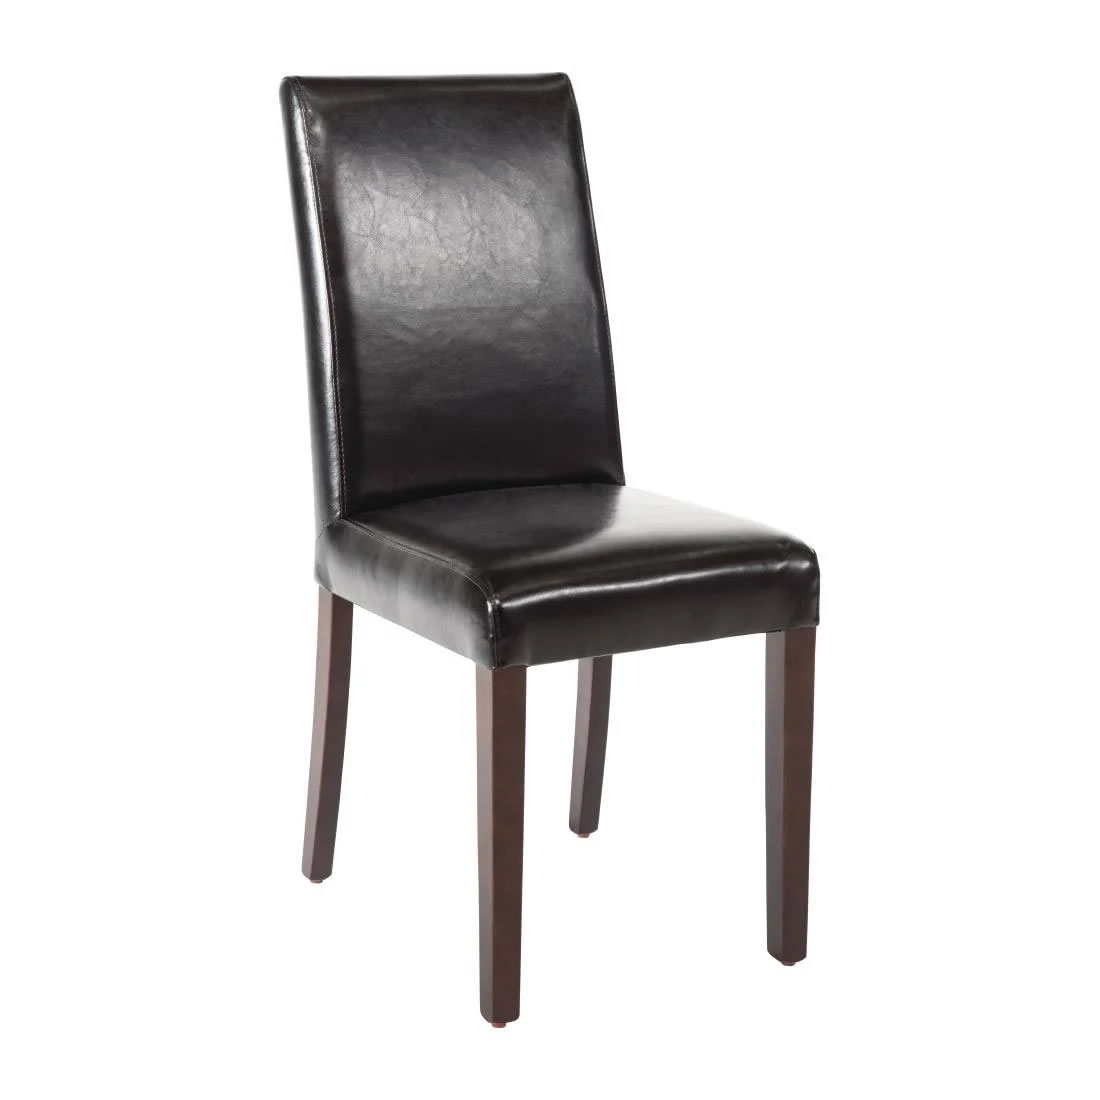 Dennis Pair Fully Padded Chair Black Seat Fully Assembled